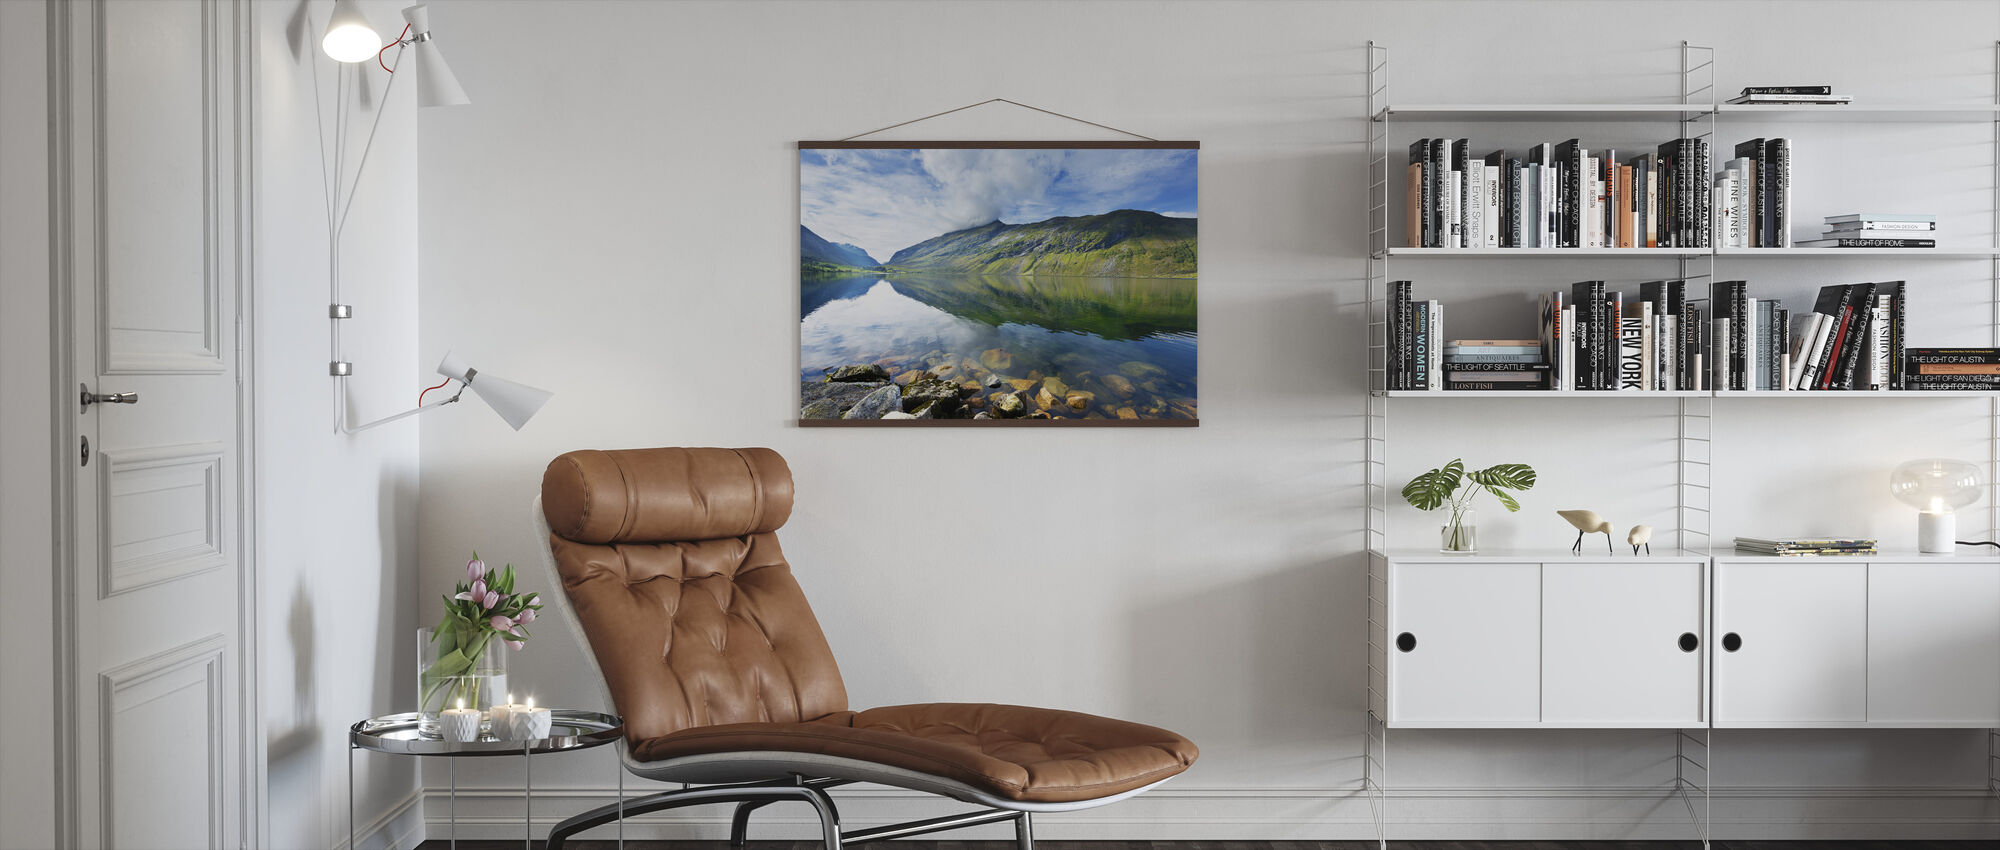 Eidsdal Lake in Geiranger, Norway II - Poster - Living Room